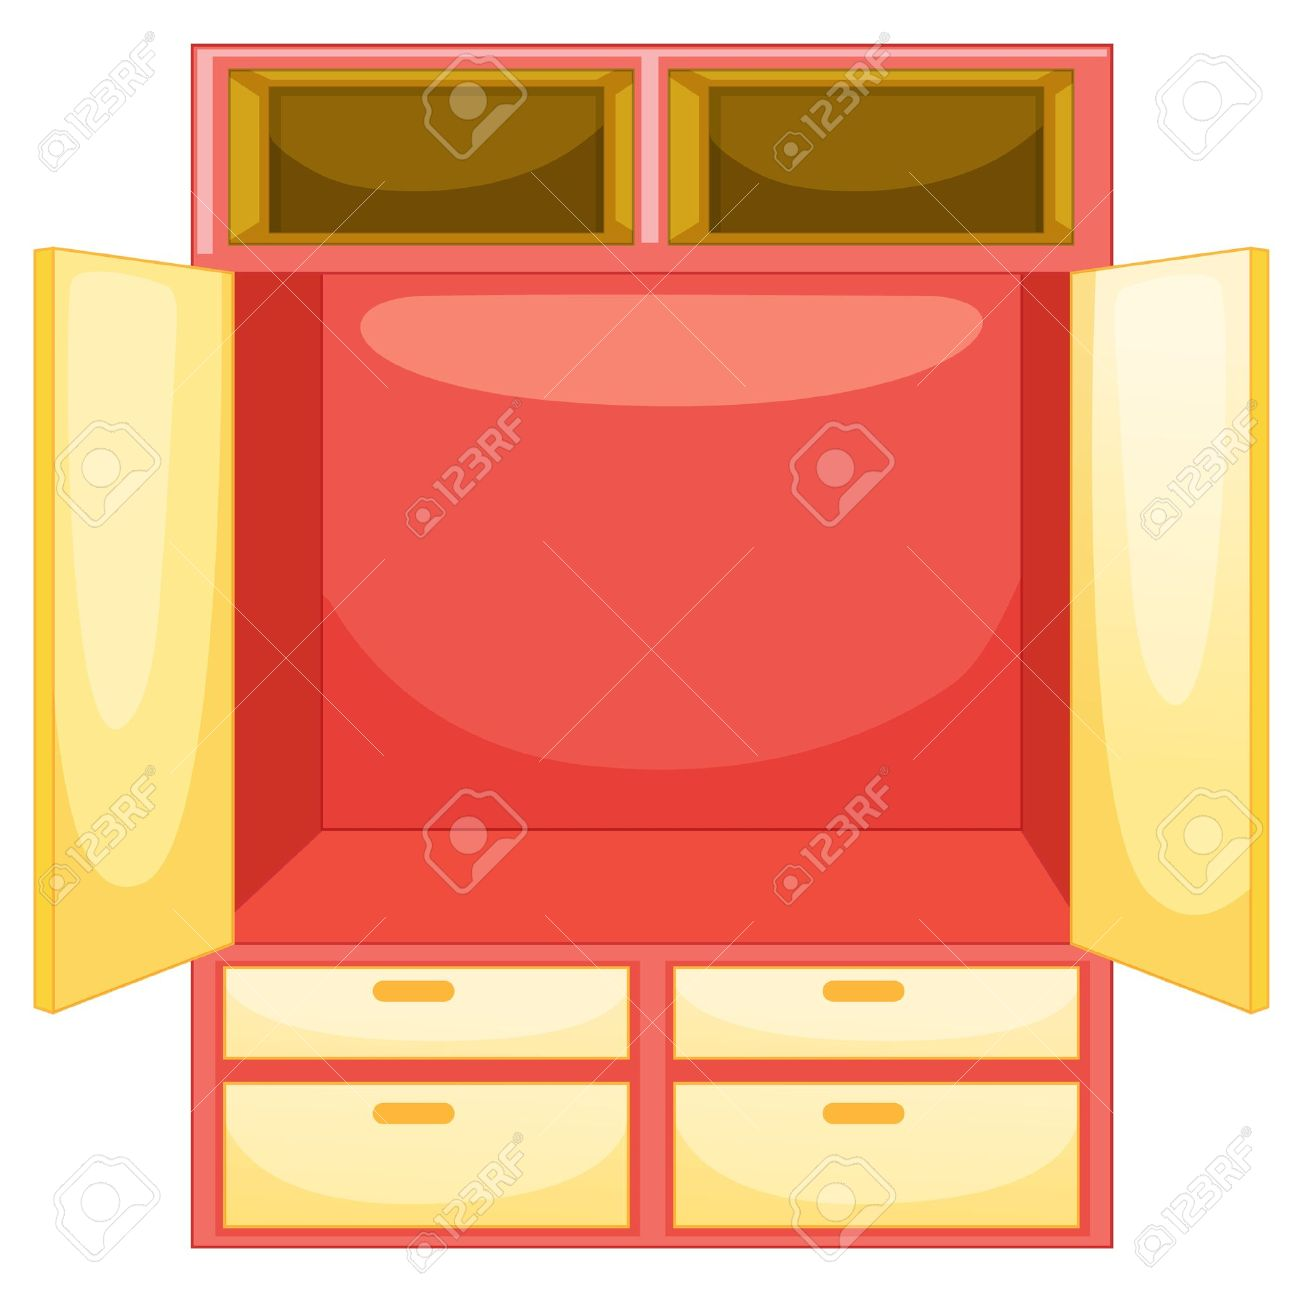 Empty Wardrobe On A White Background Stock Vector